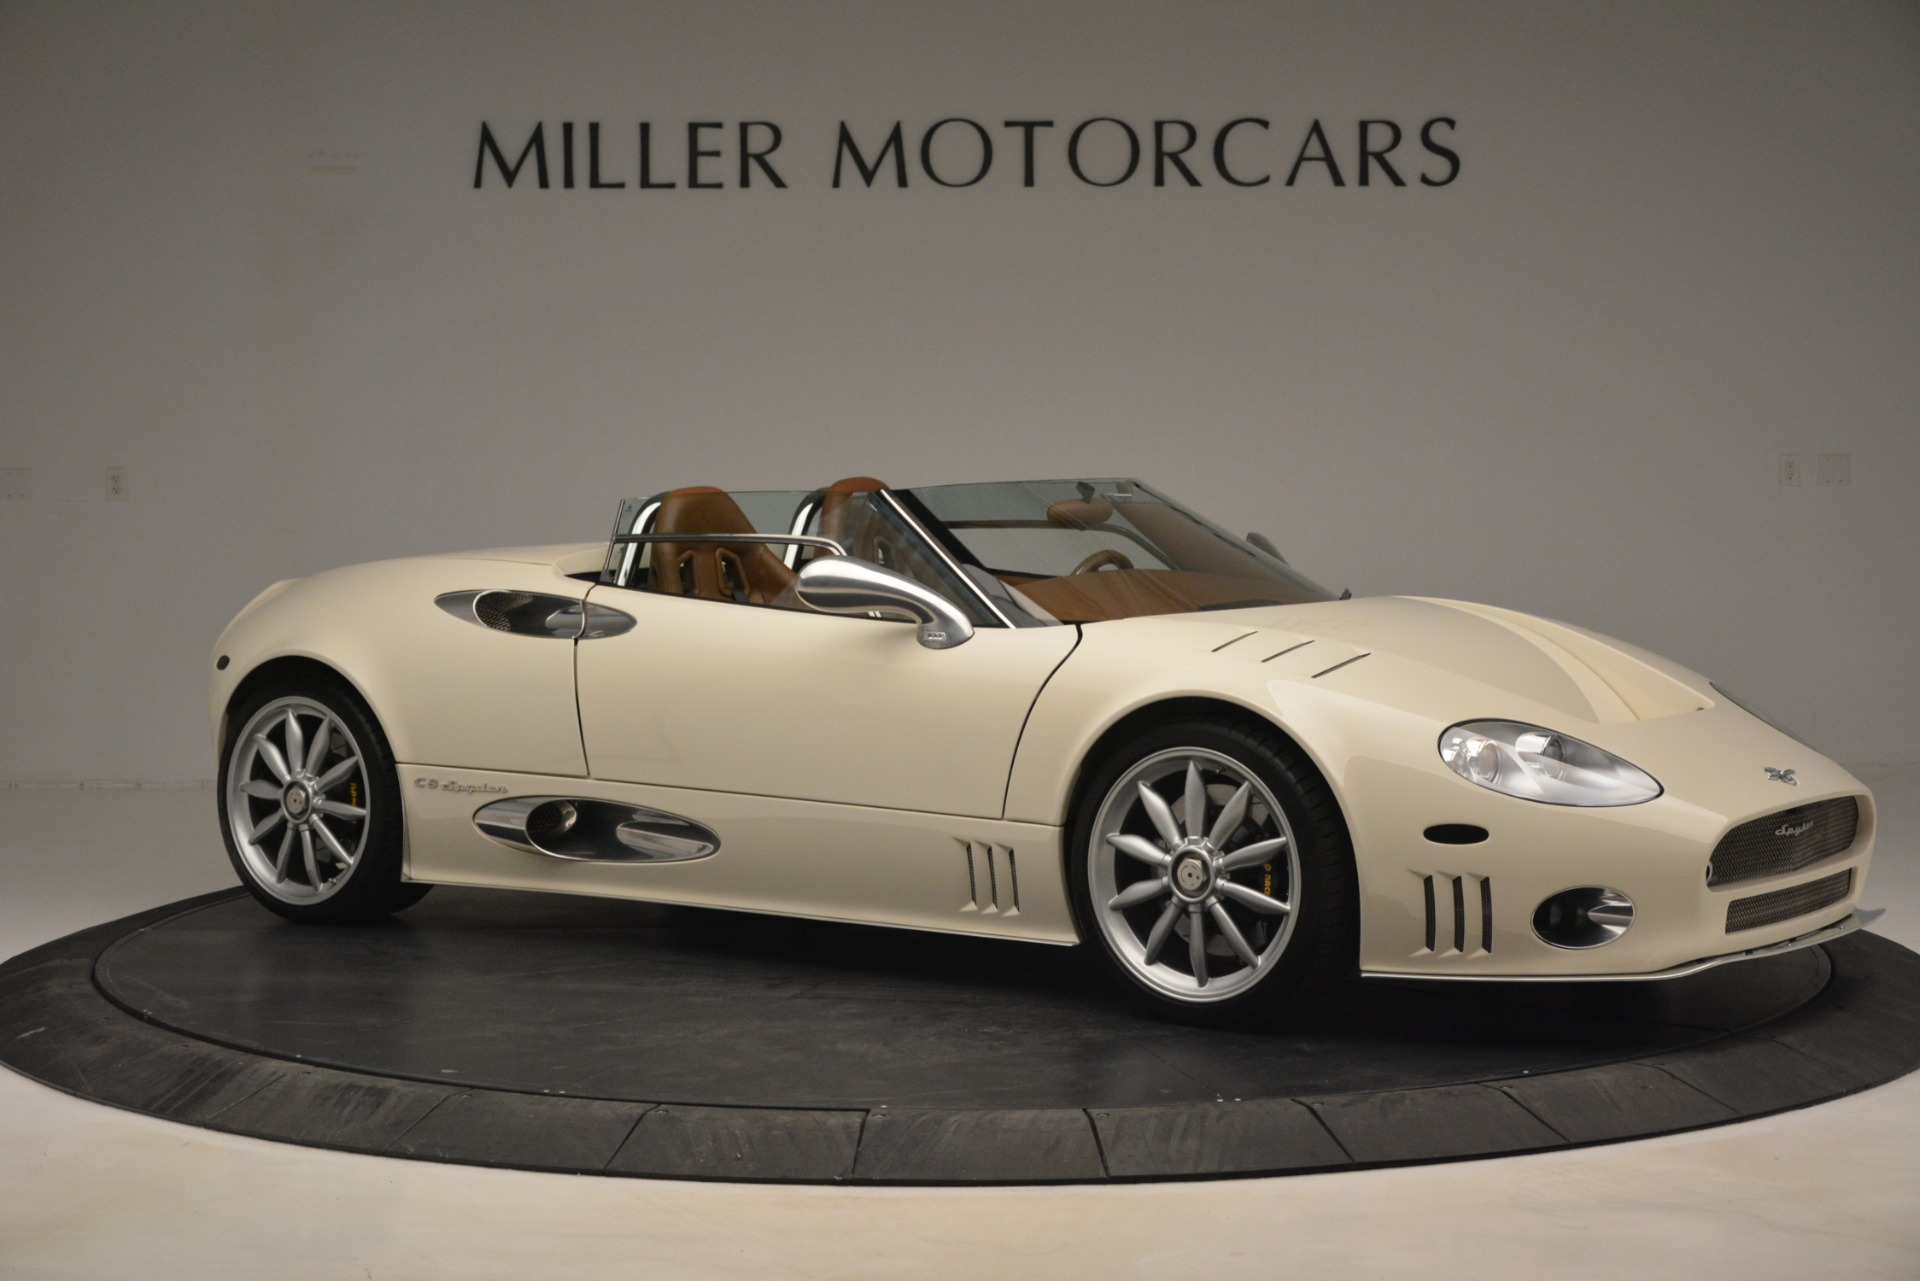 Used 2006 Spyker C8 Spyder  For Sale In Greenwich, CT 1661_p10